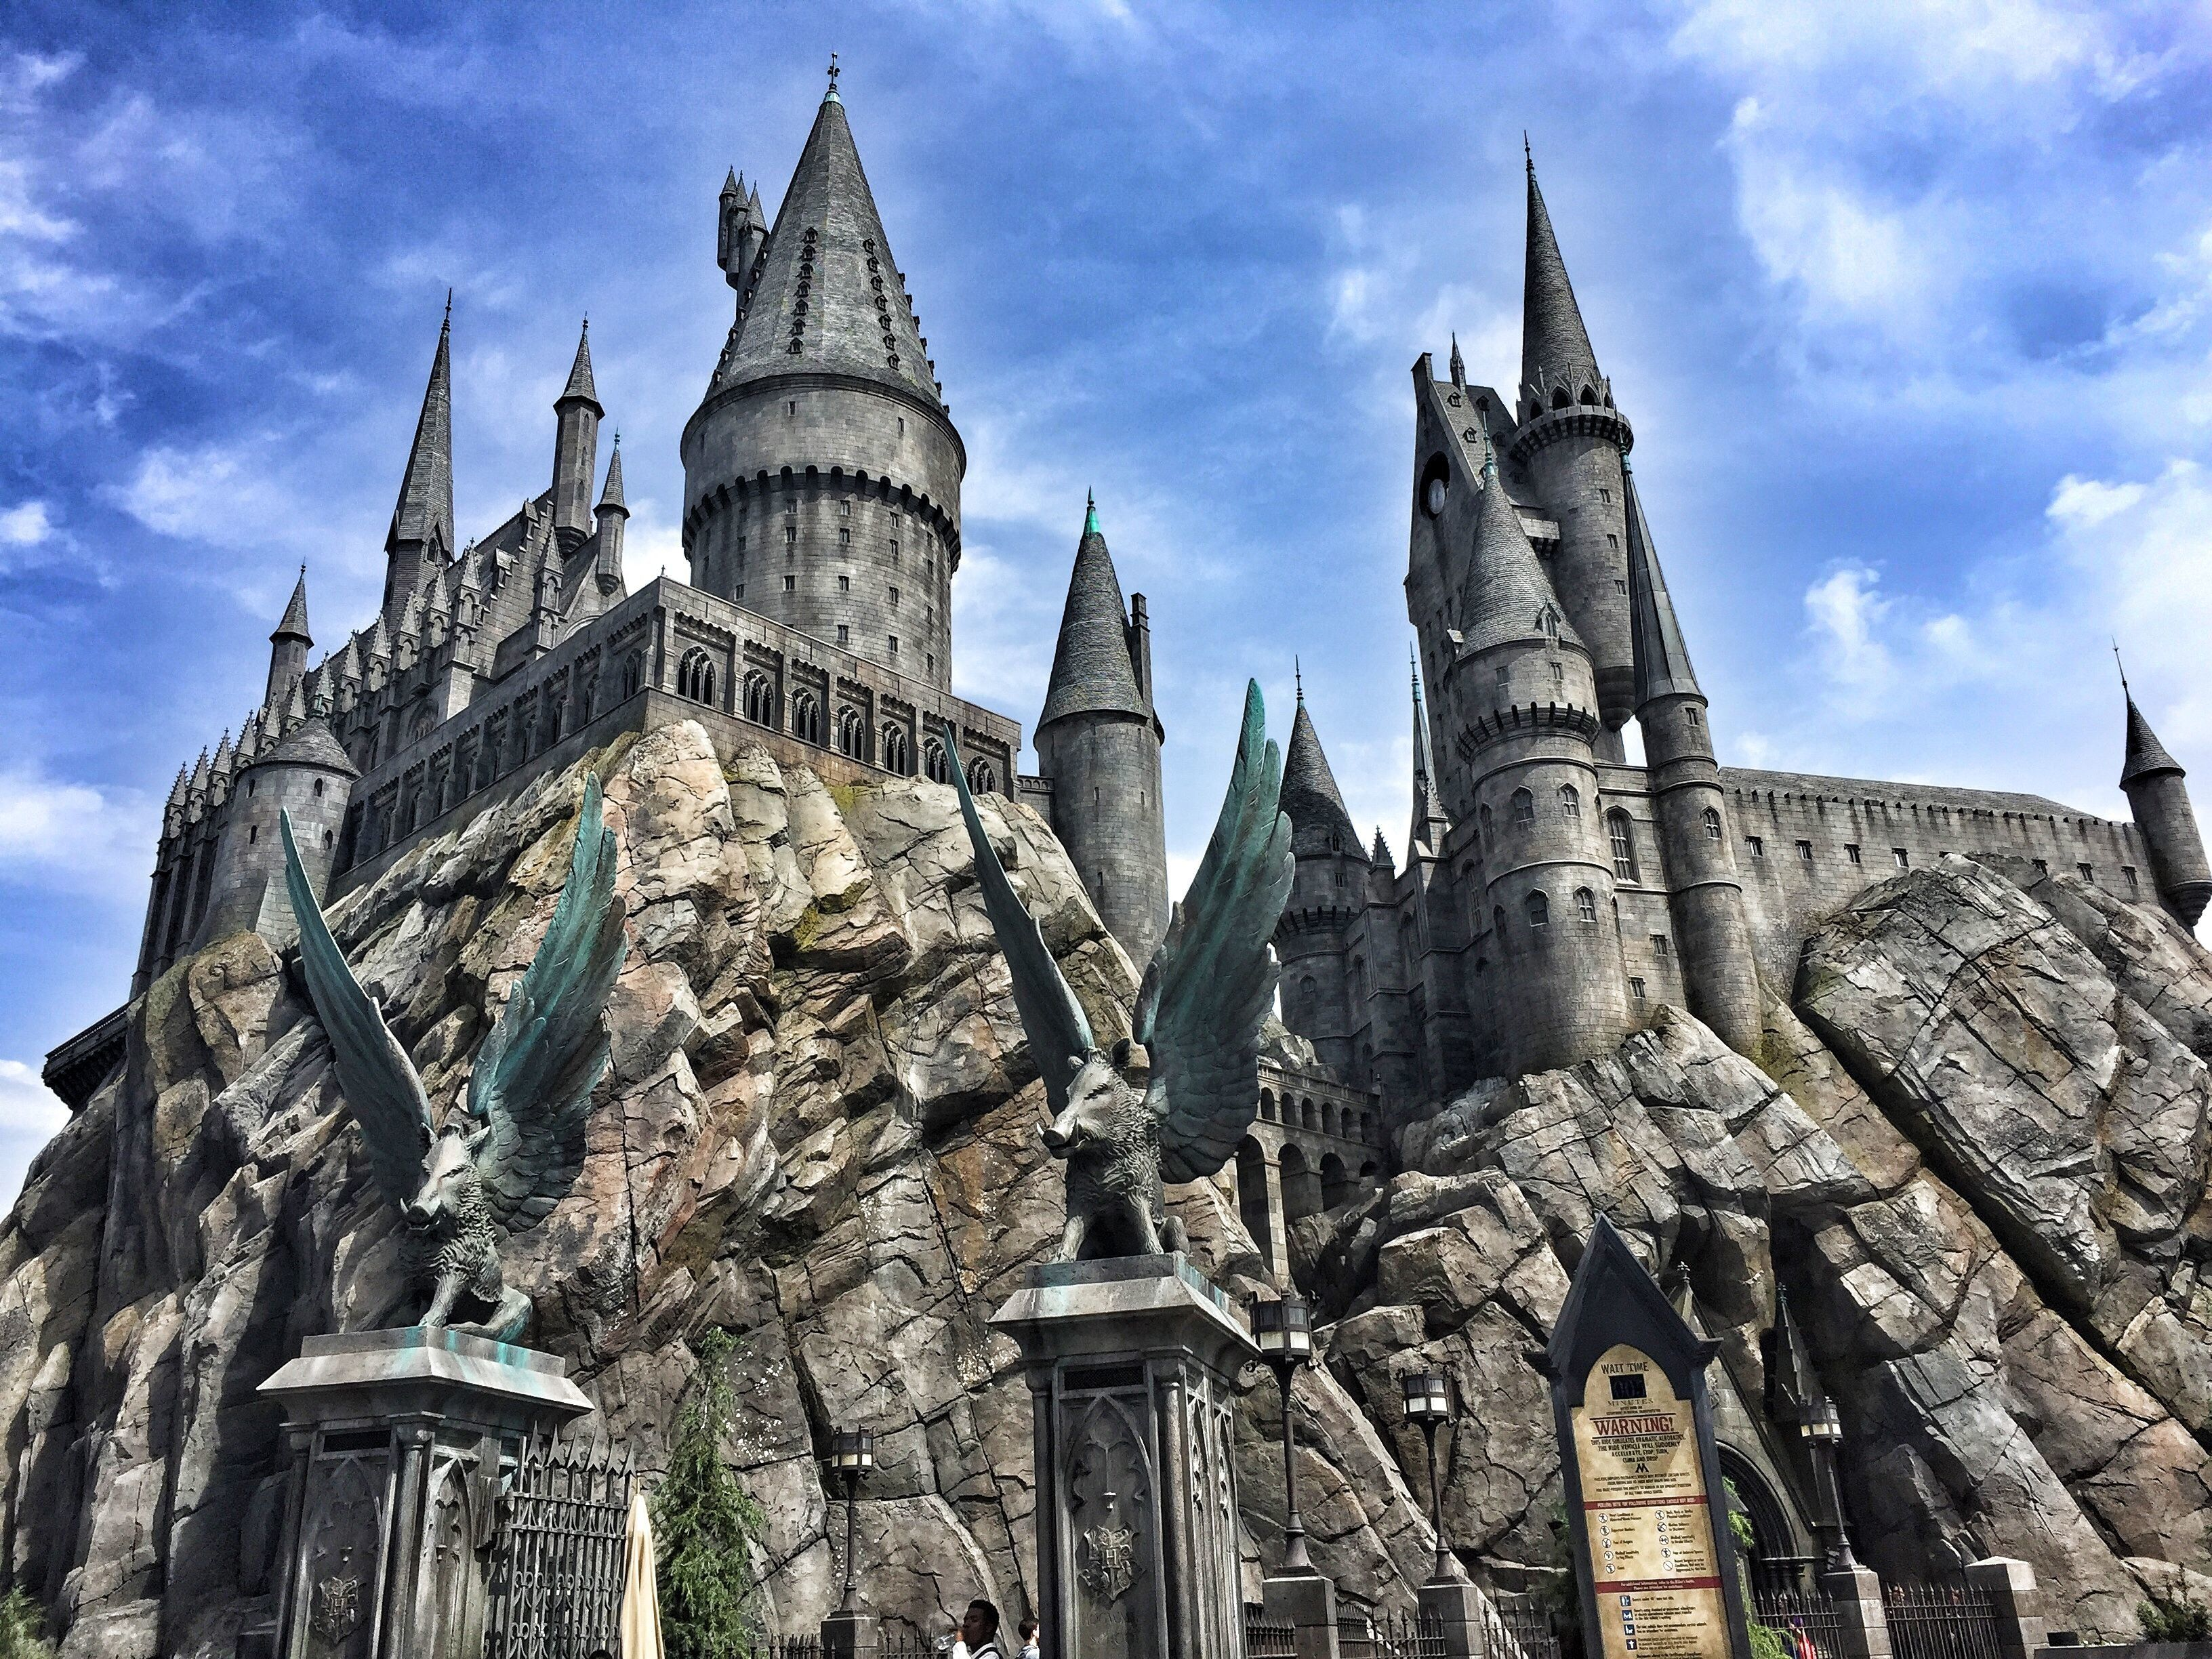 'Harry Potter' Fans Horrified By Grim Pottermore Tweet About Hogwarts